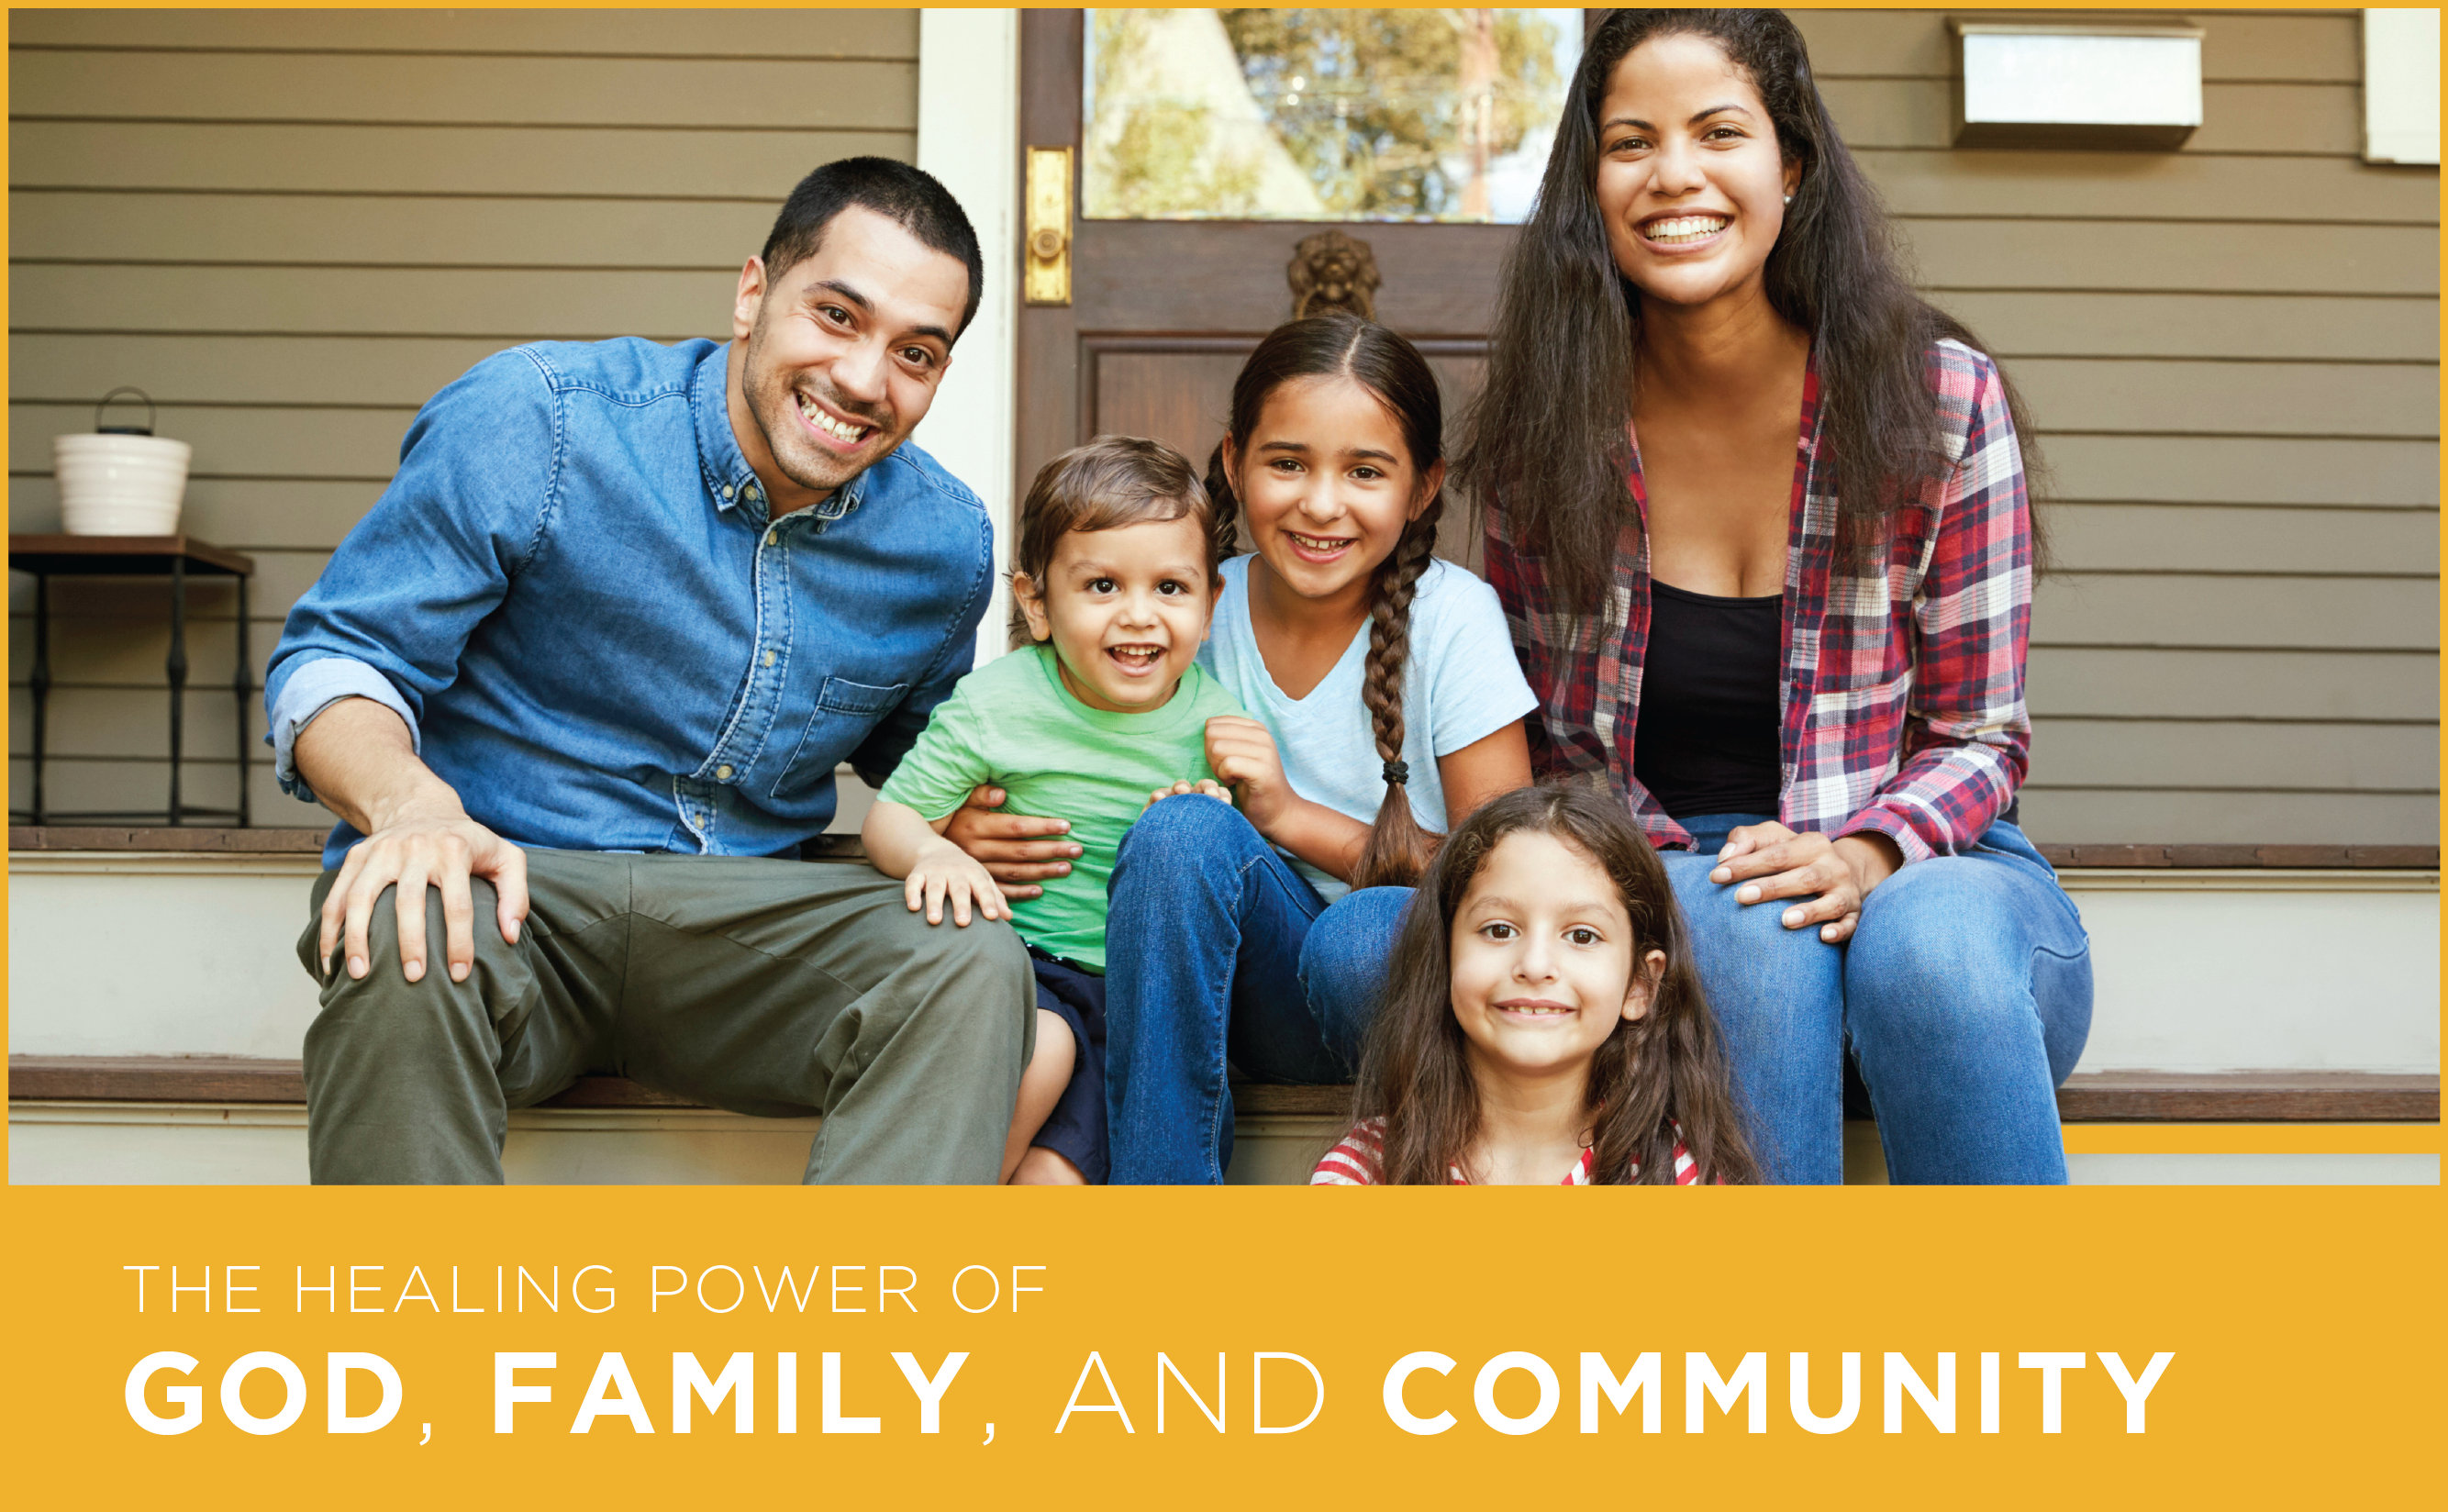 The healing power of God, family, and community.